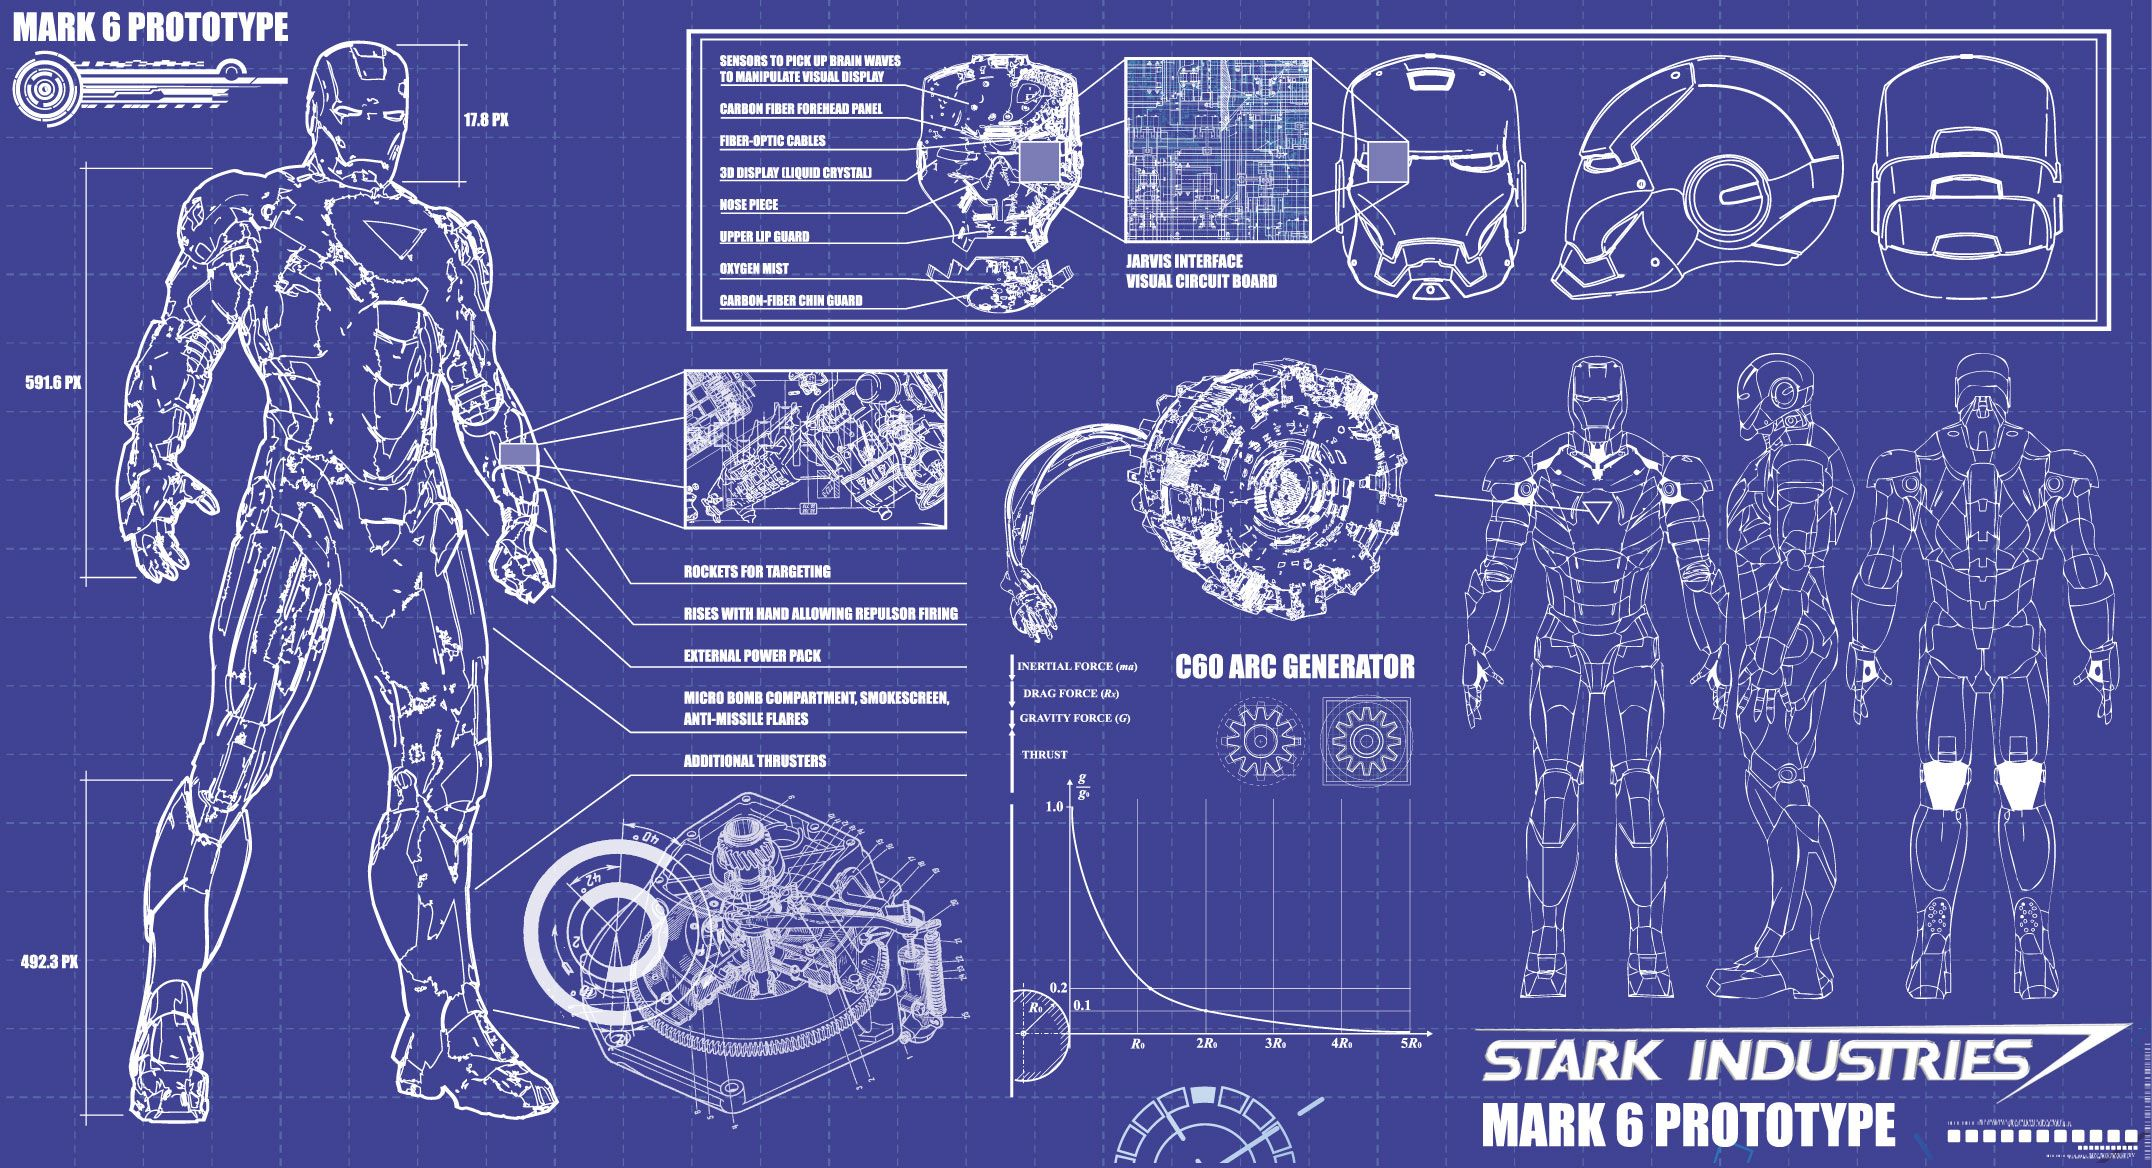 Download iron man blueprints stark industries 17202 8 hd desktop download iron man blueprints stark industries 17202 8 hd desktop wallpapers wallpapers87 high definition desktop wallpapers malvernweather Choice Image